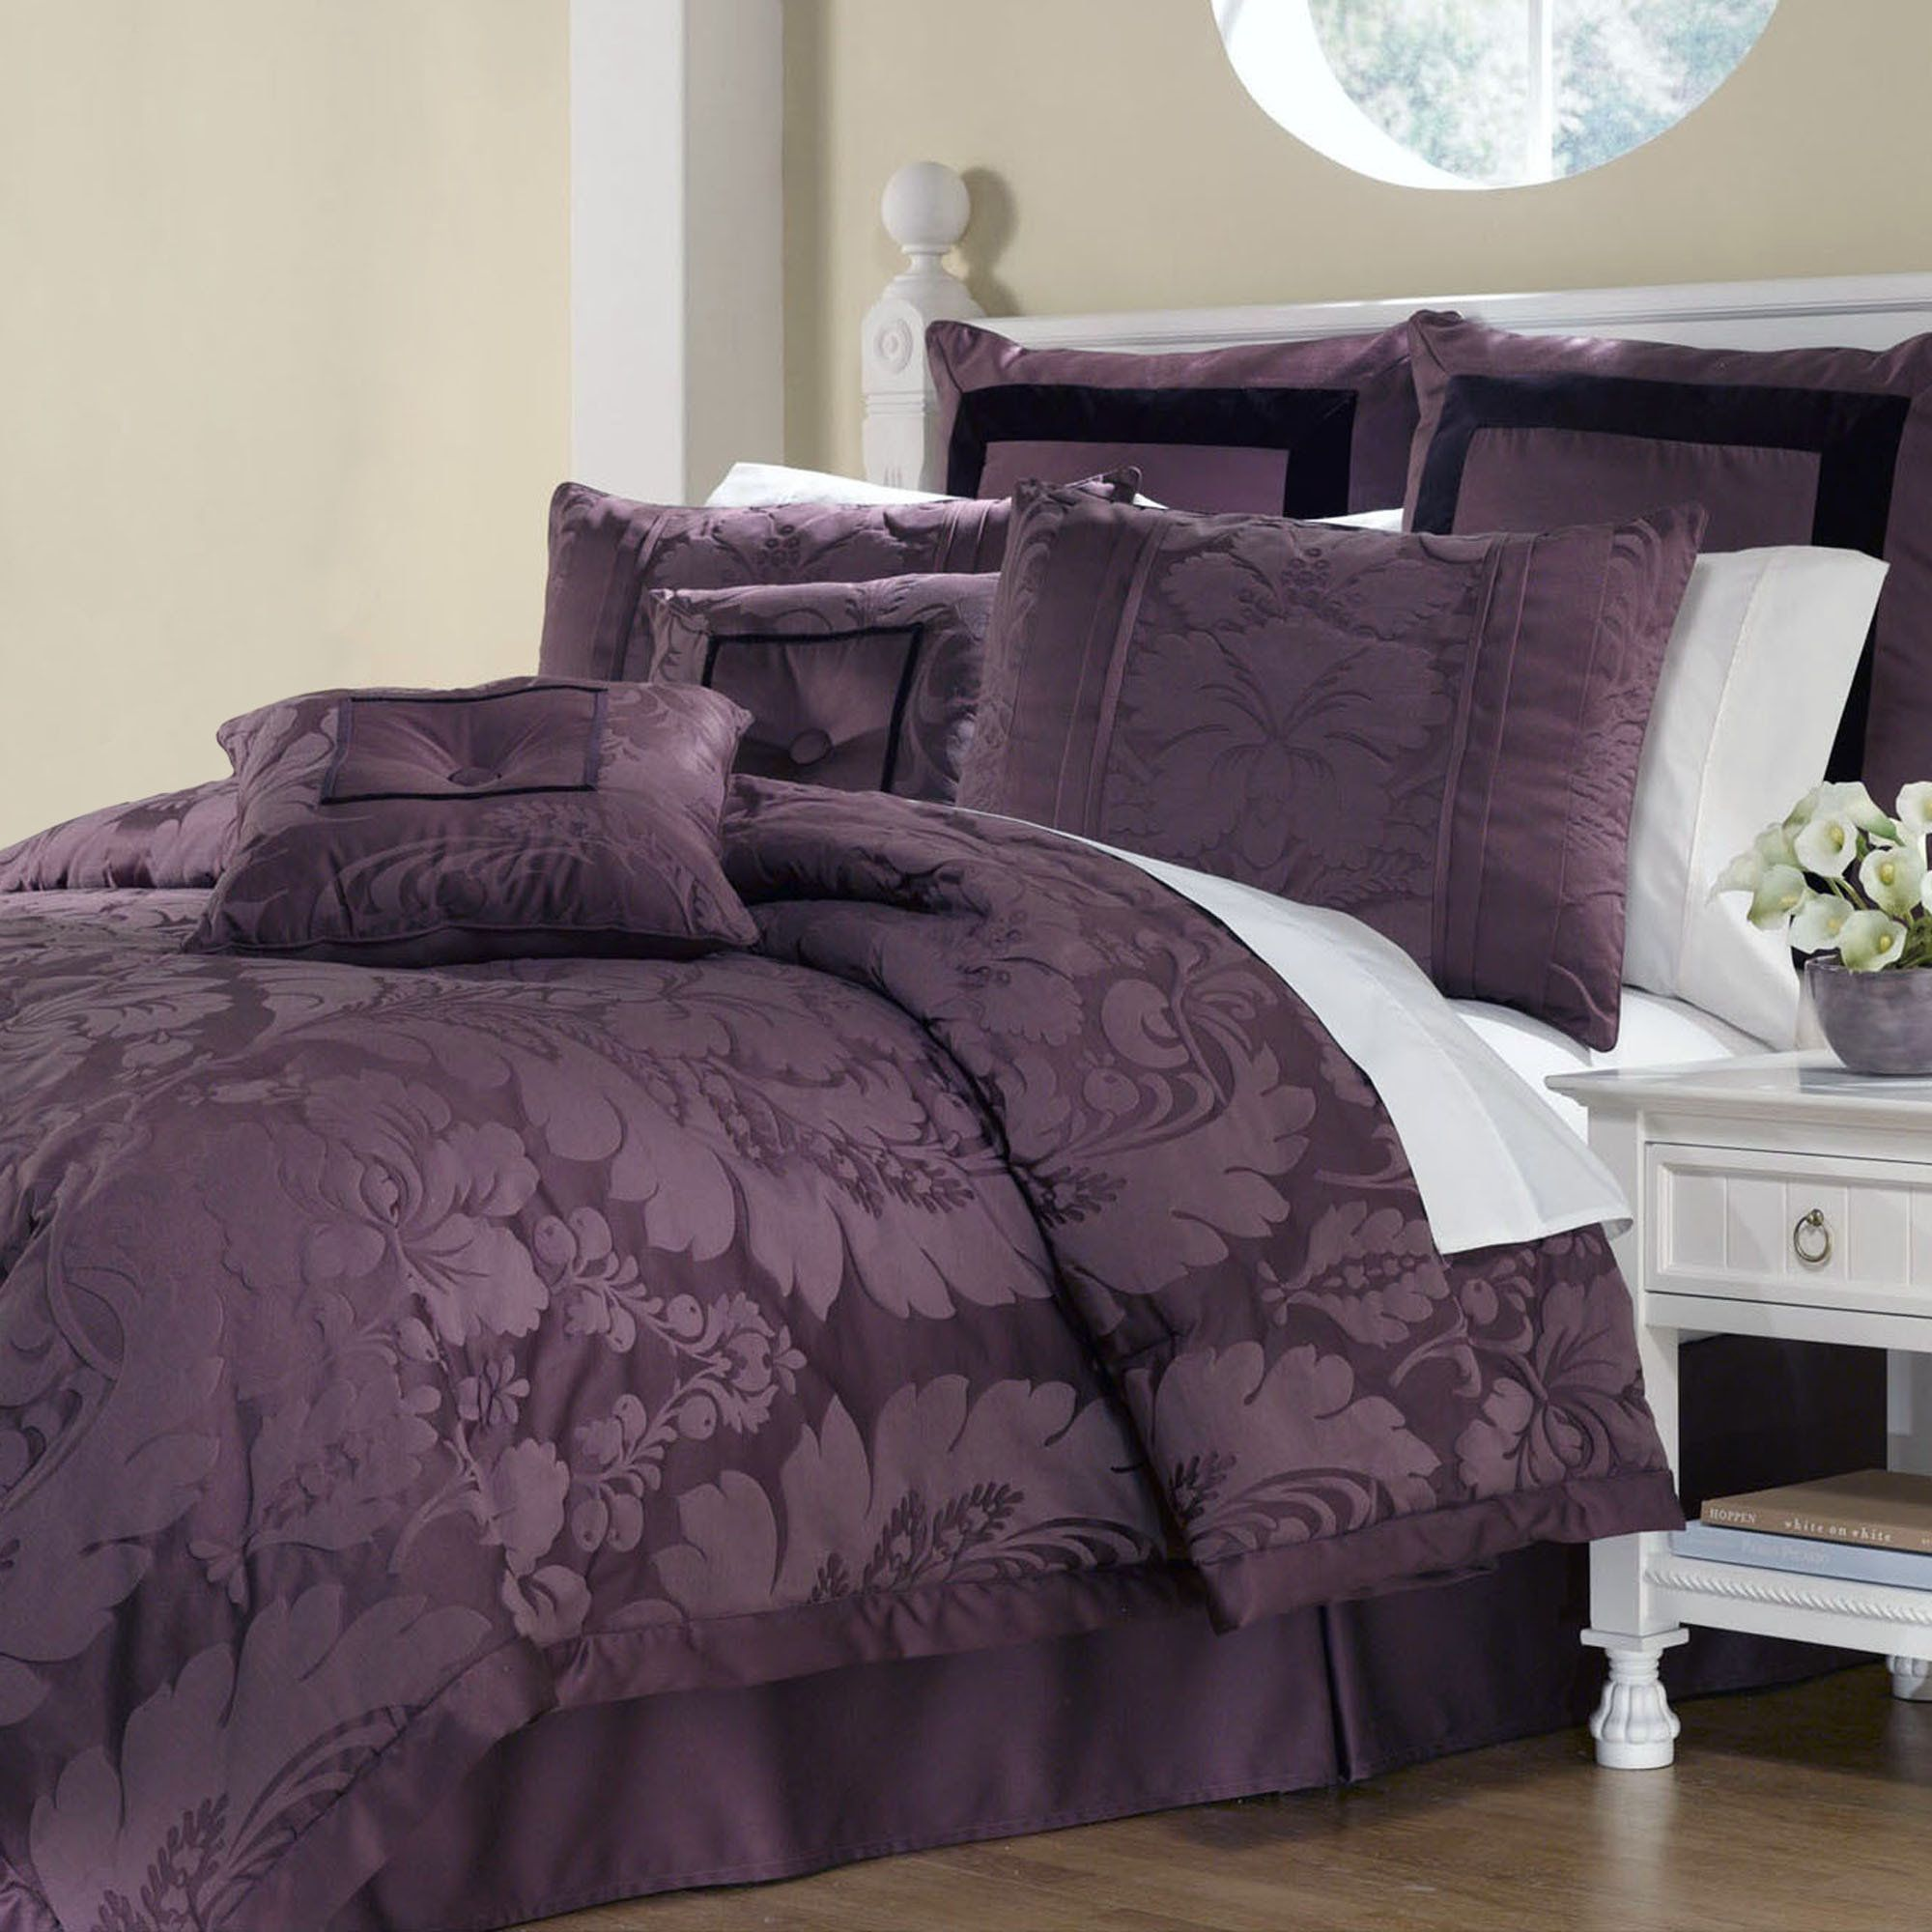 Lorenzo Damask 8 Pc Comforter Bed Set With Images Comforter